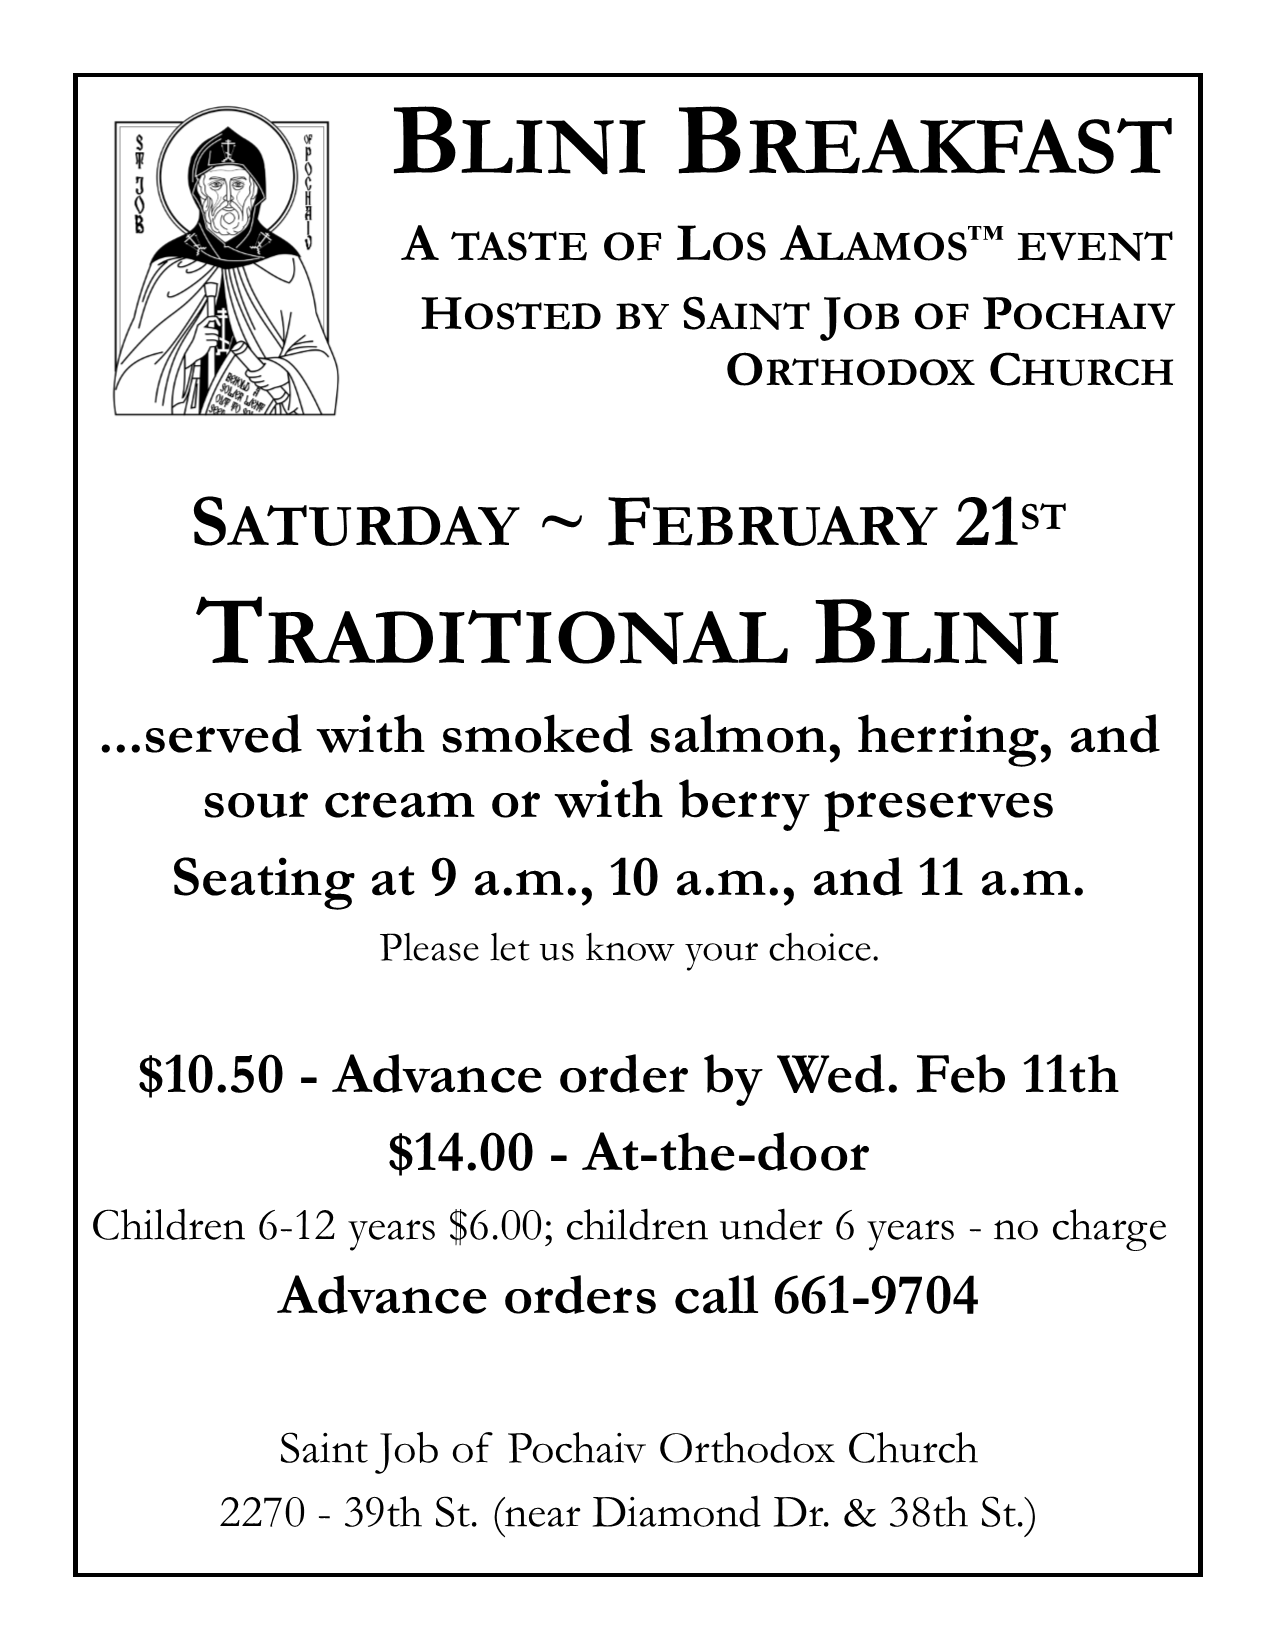 To pre-order by email, request your tickets at blini@stjobla.org